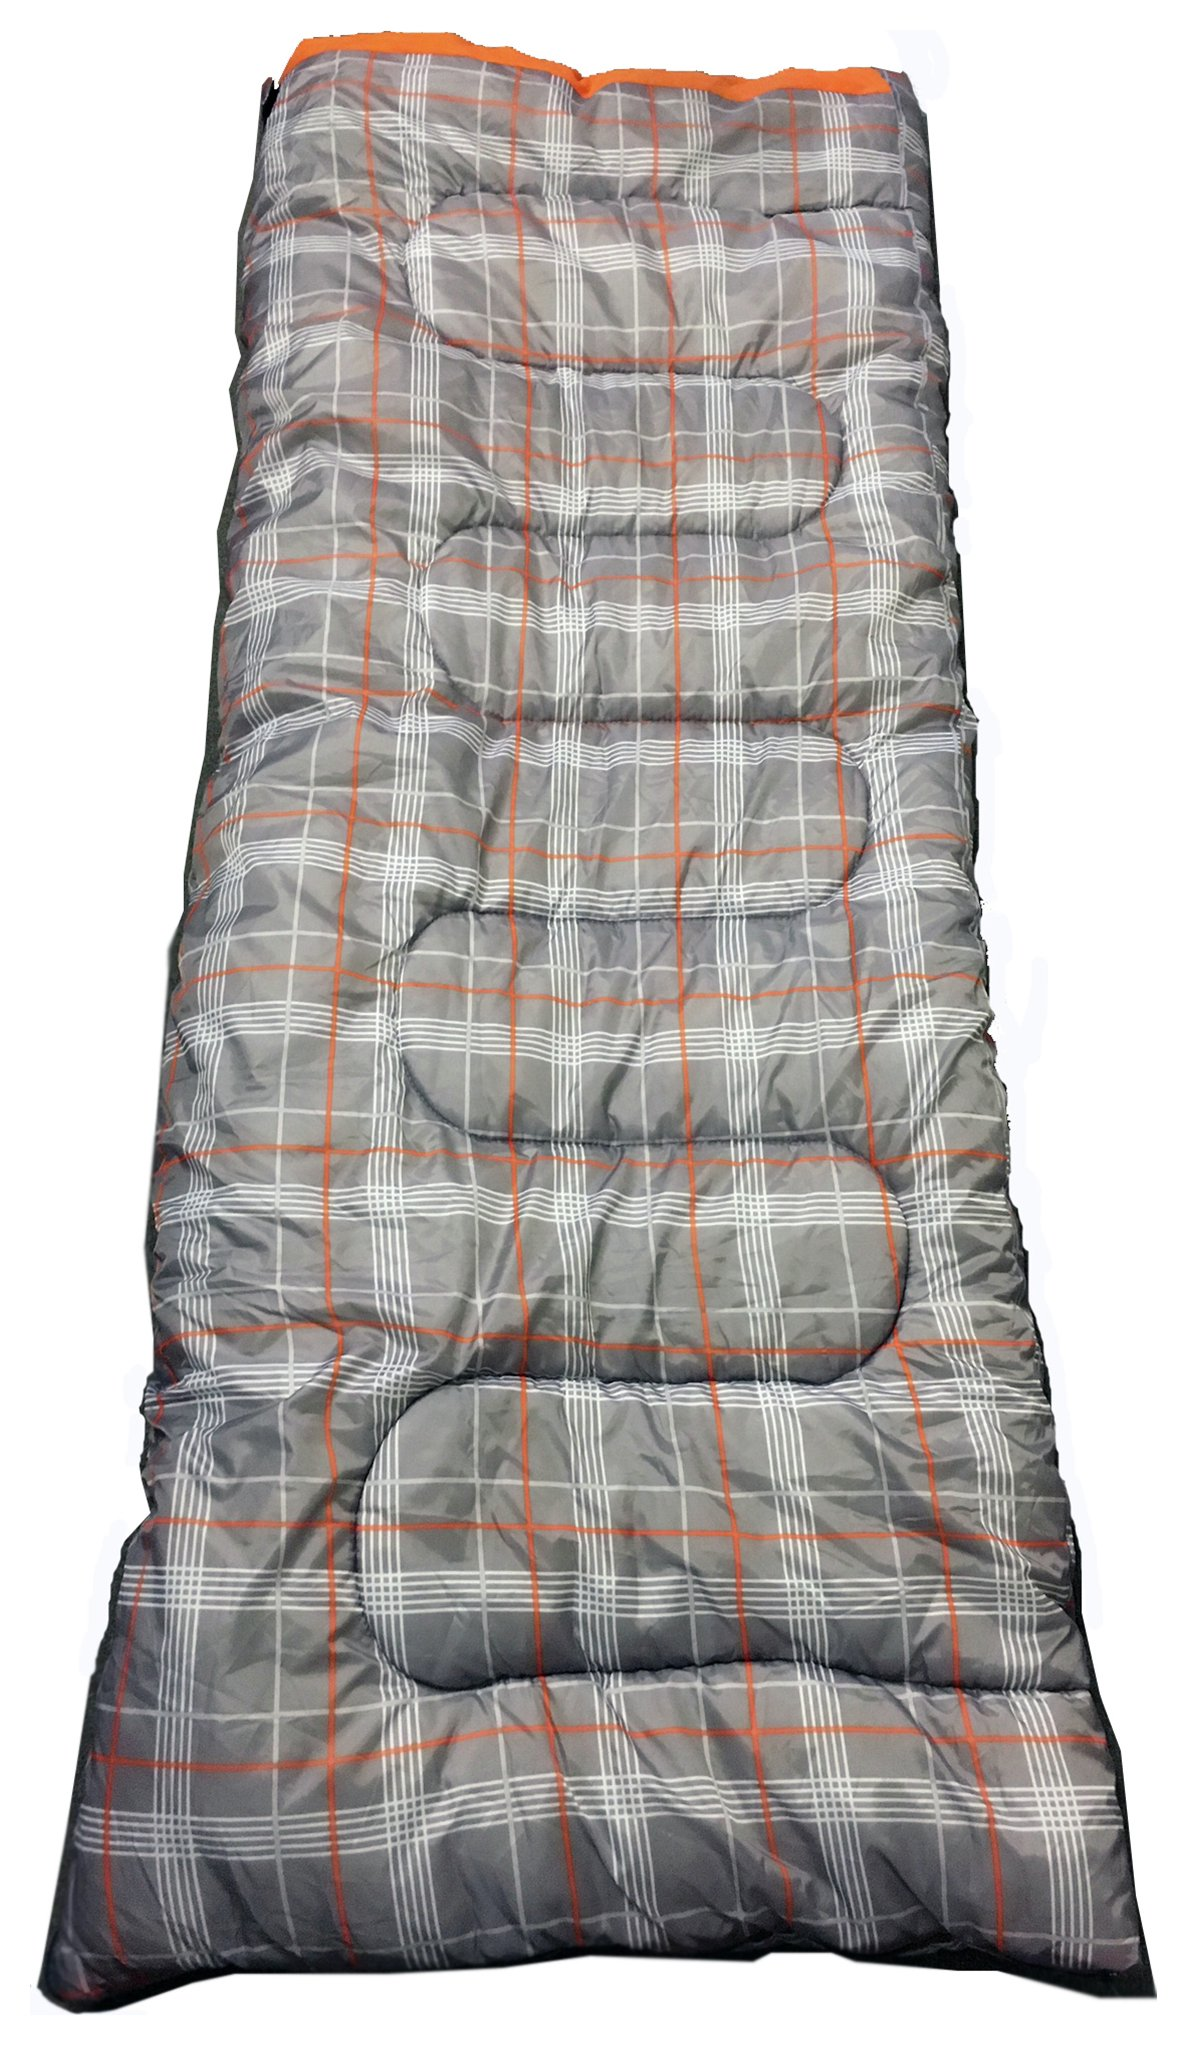 Olpro Hush 300GSM Sleeping Bag Plan